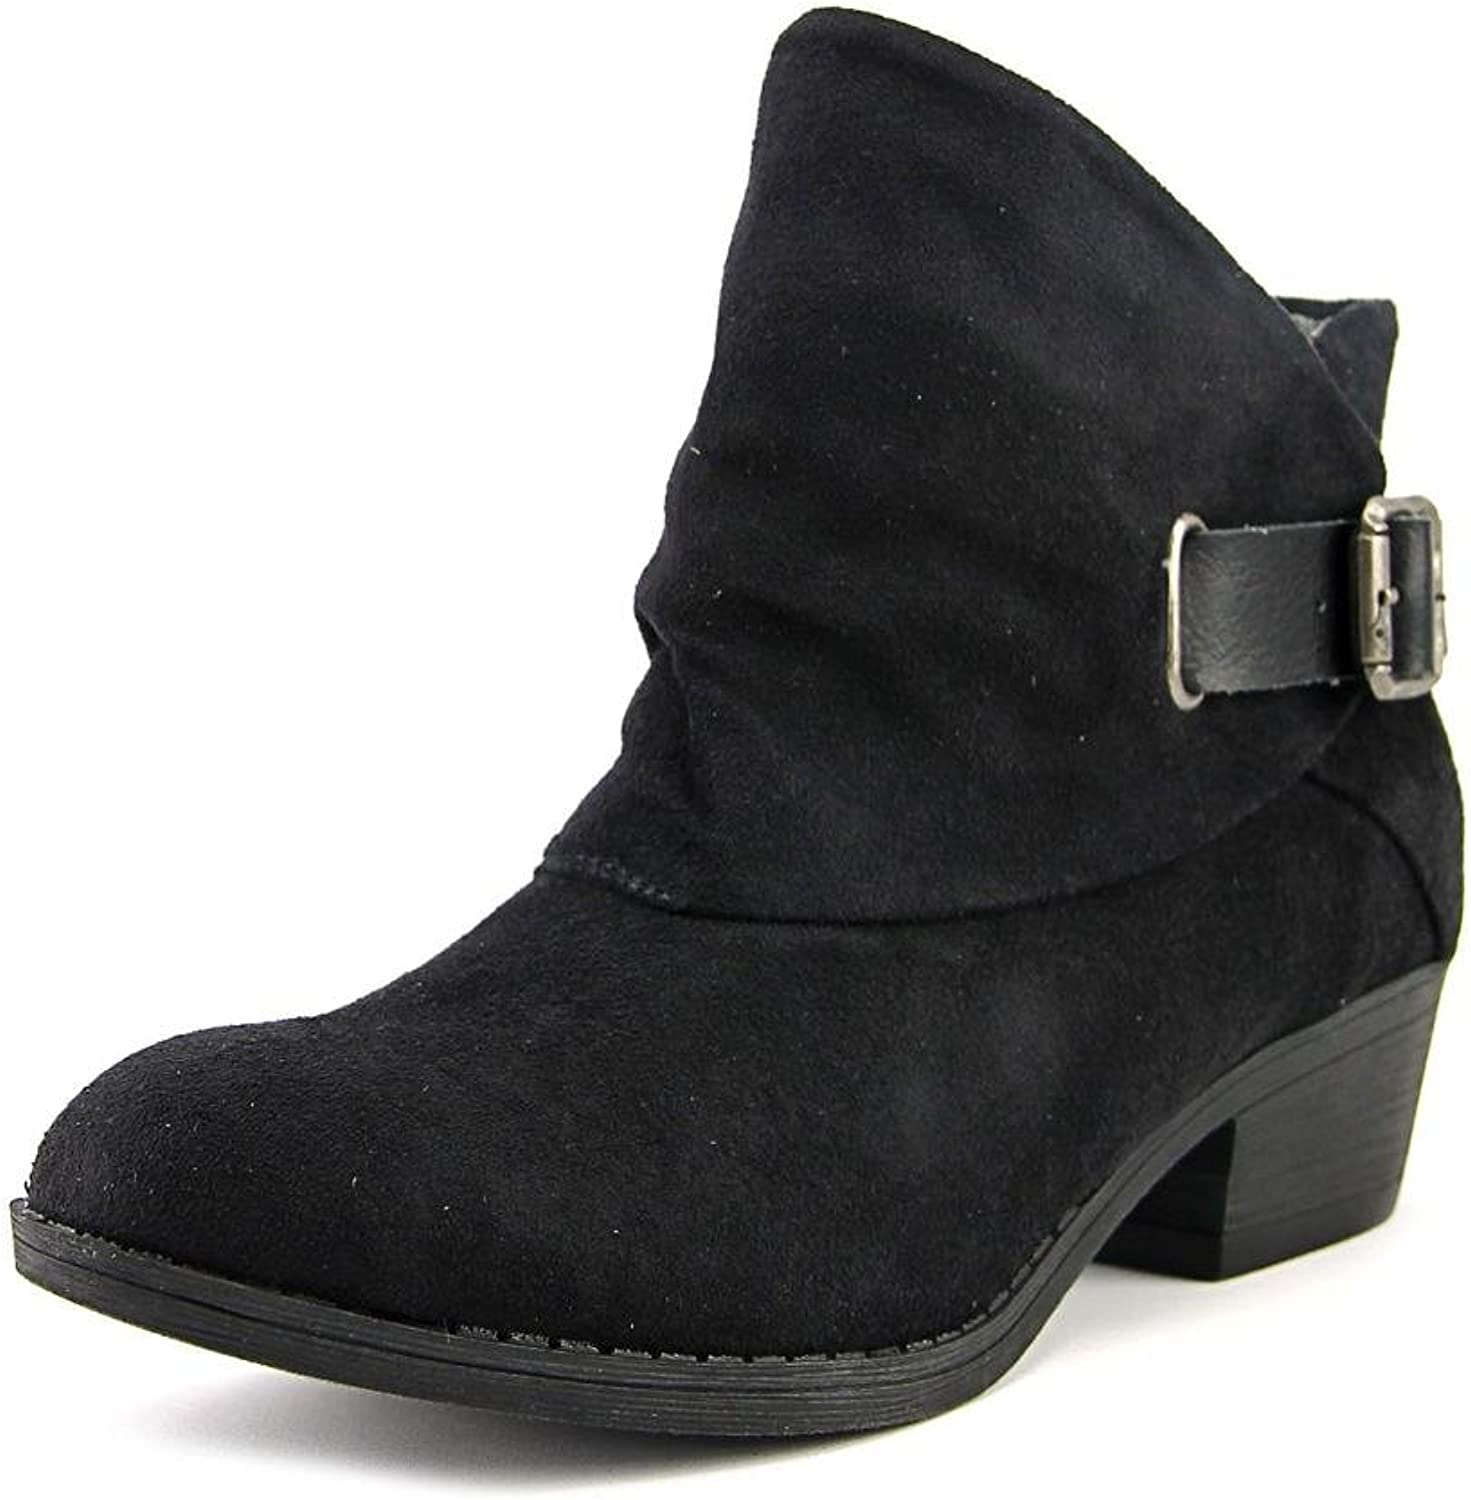 Blowfish Women's, Sill Ankle Boots Black 6.5 M